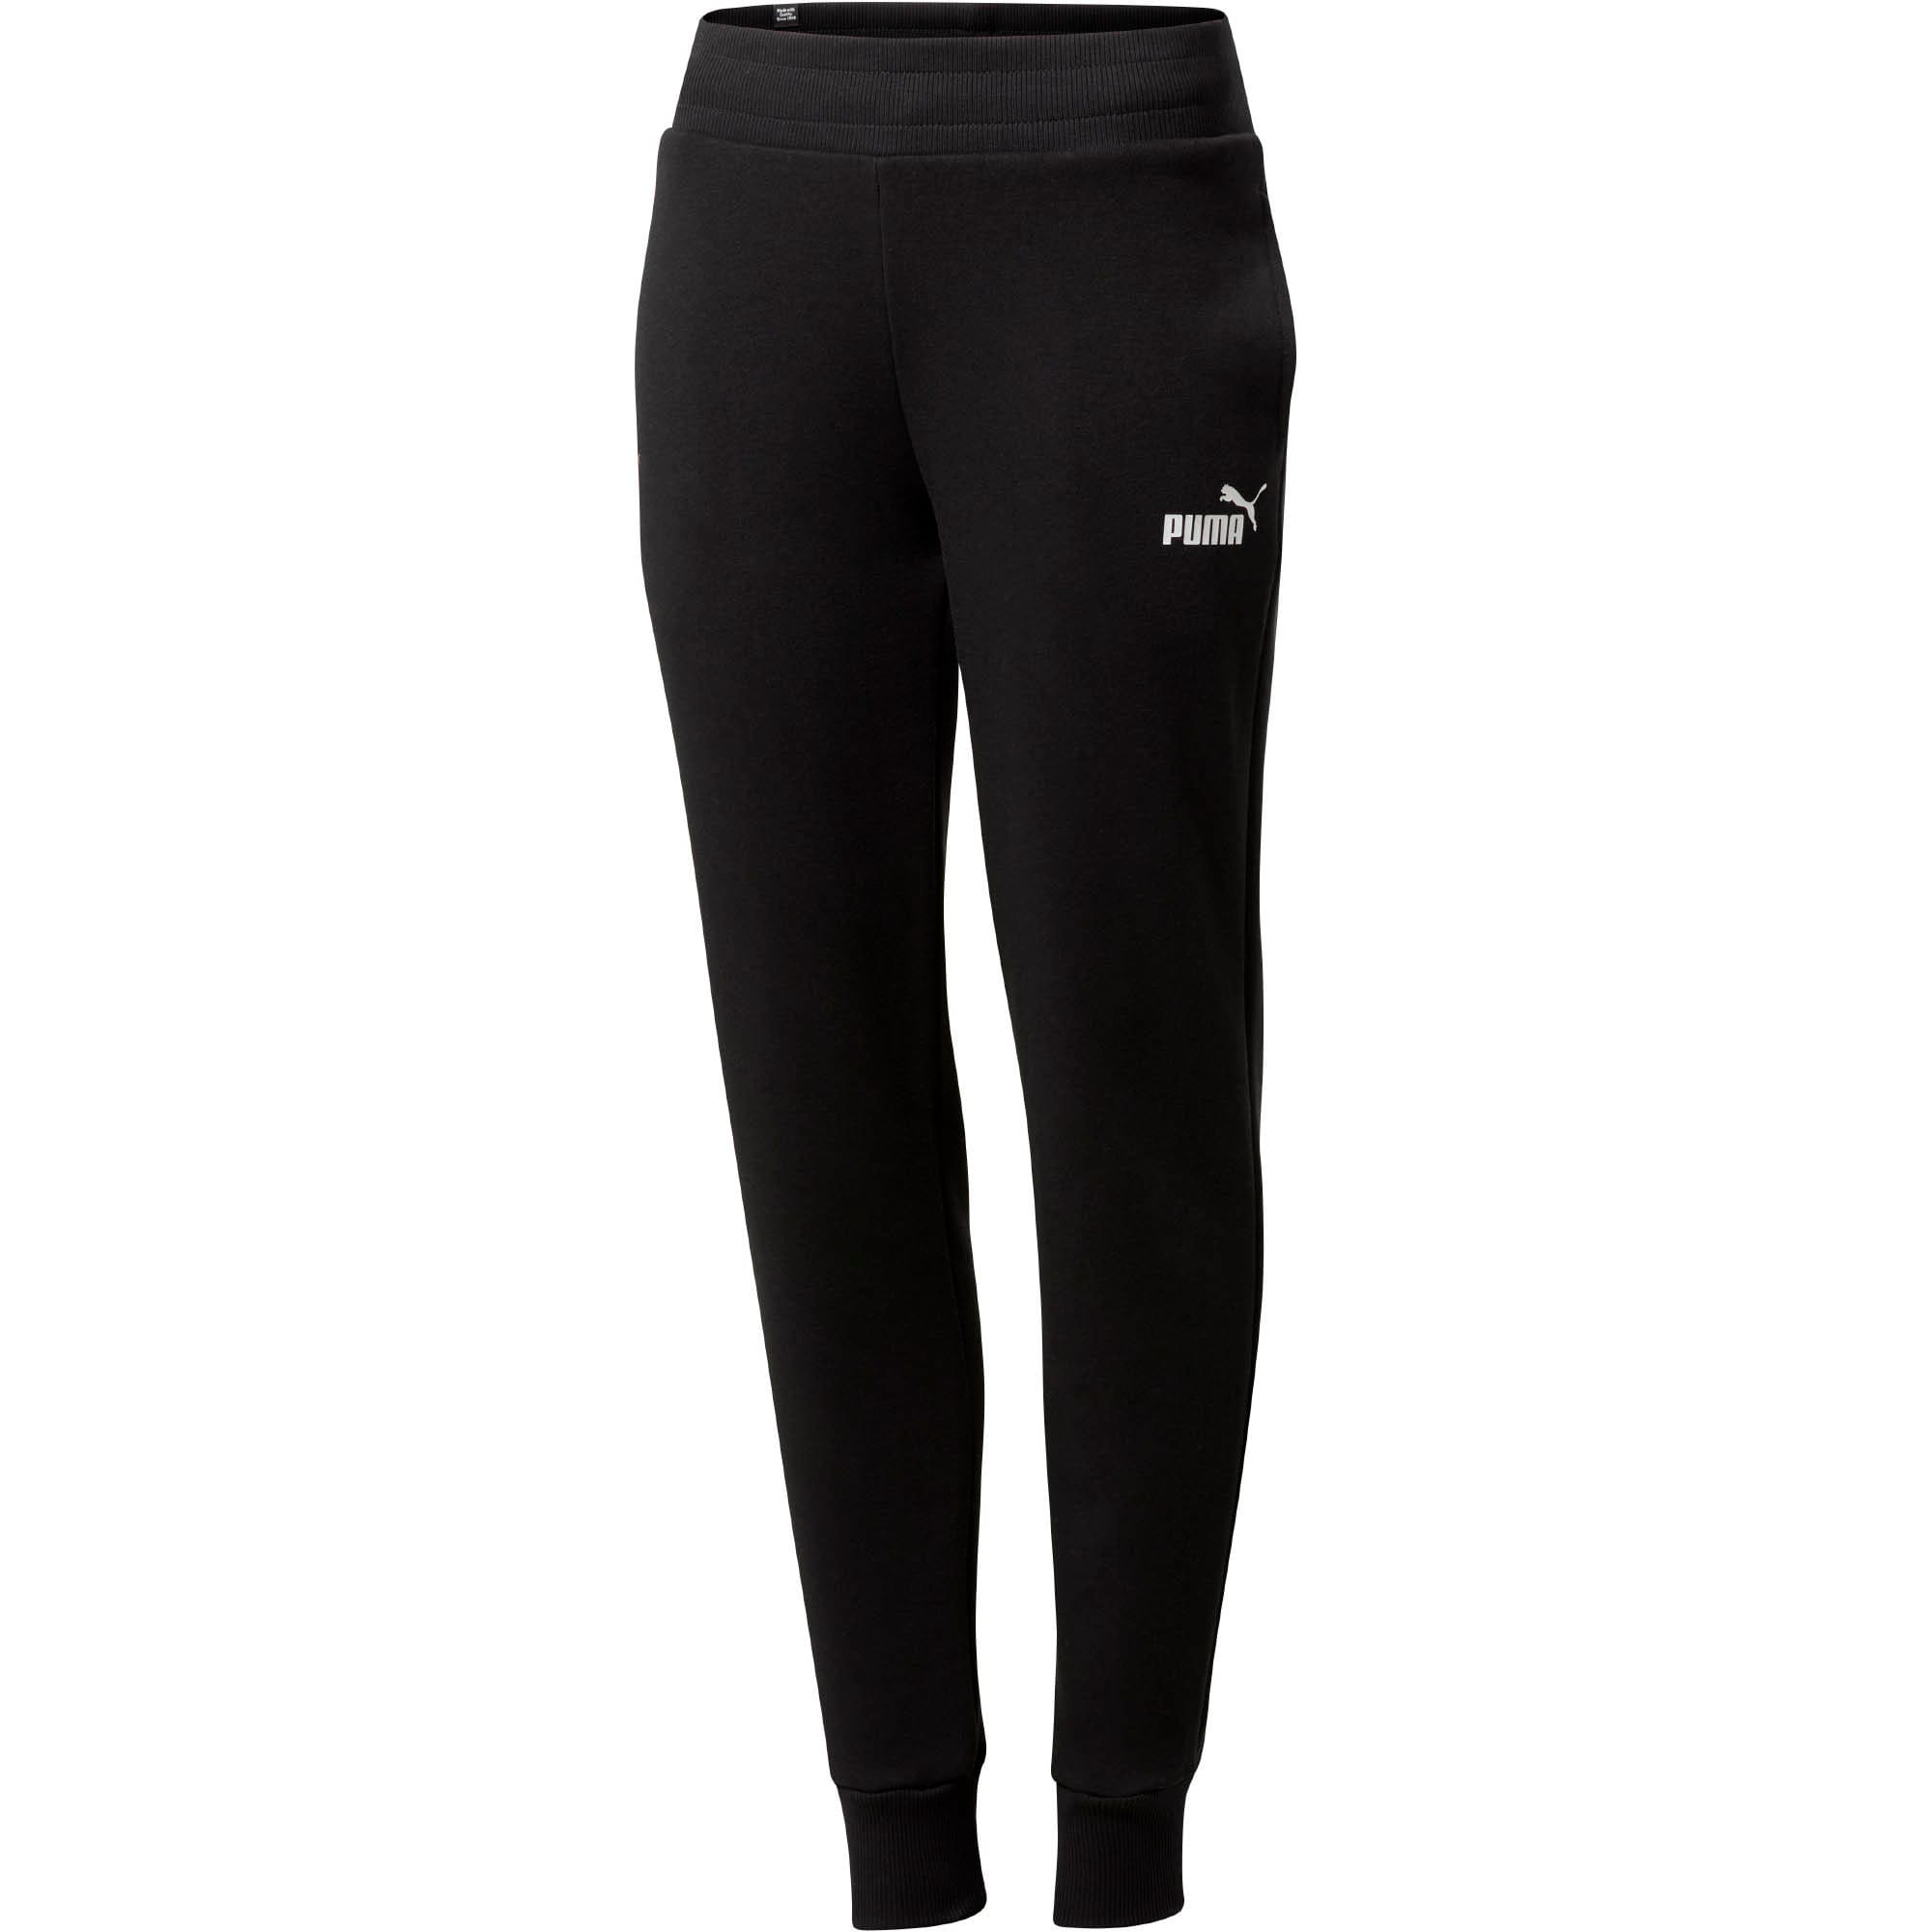 ESS Women's Fleece Sweatpants, Cotton Black, large